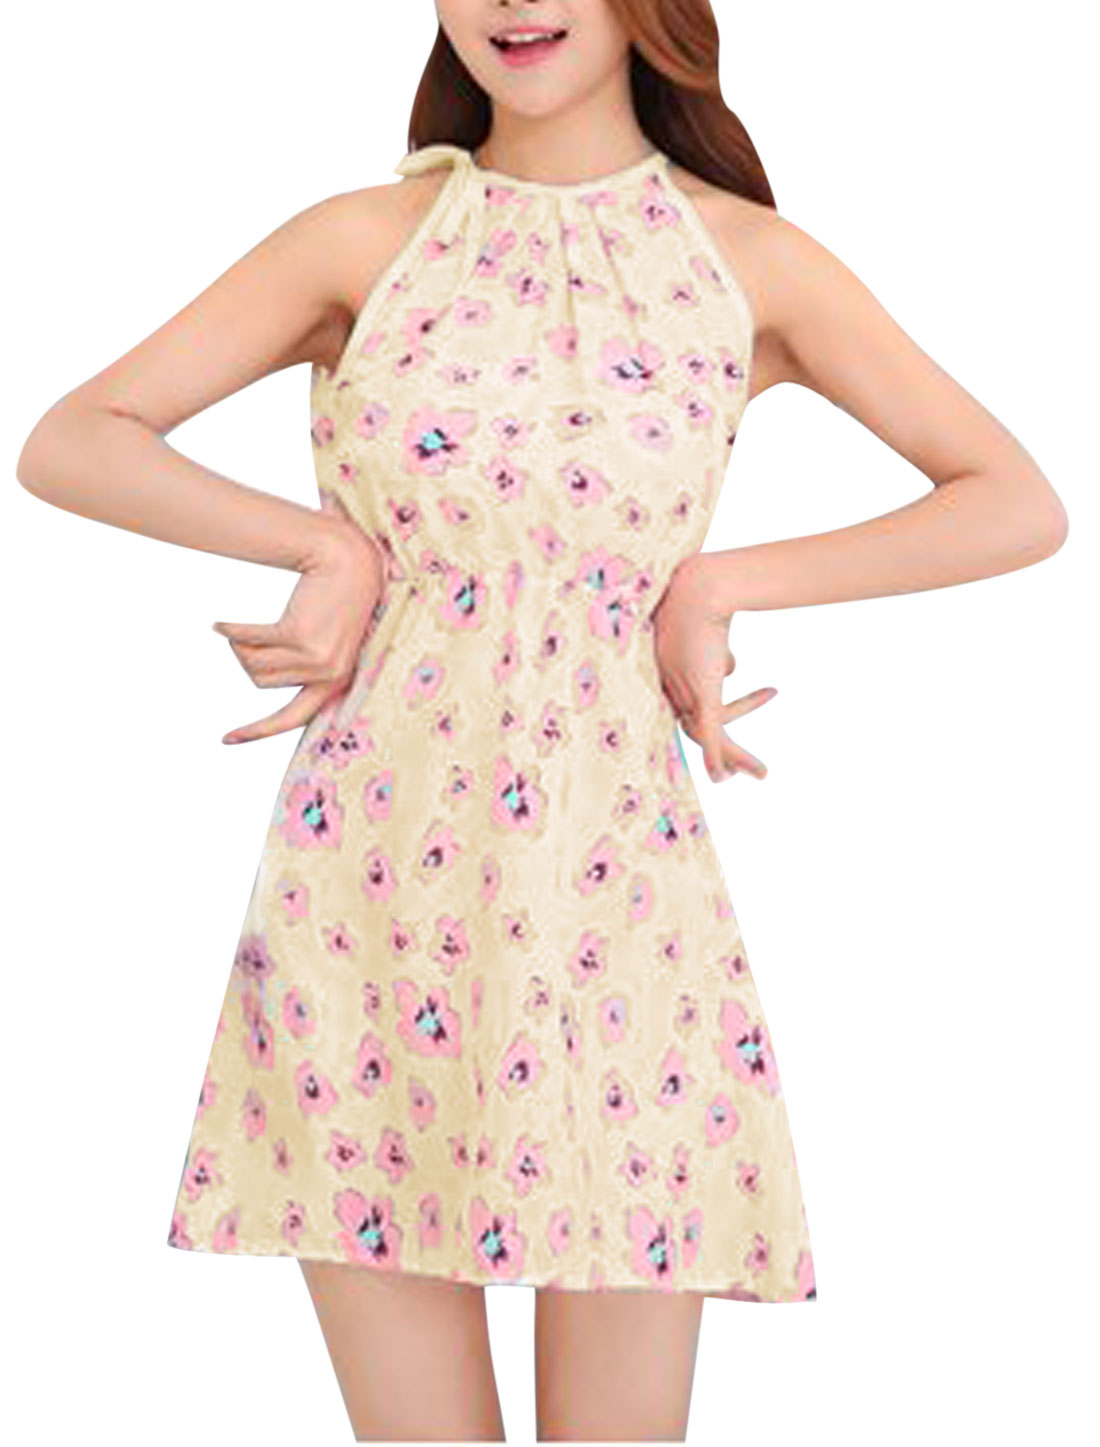 Lady Floral Prints Cut Out Back Slipover Unlined A Line Sundress Beige Pink XS